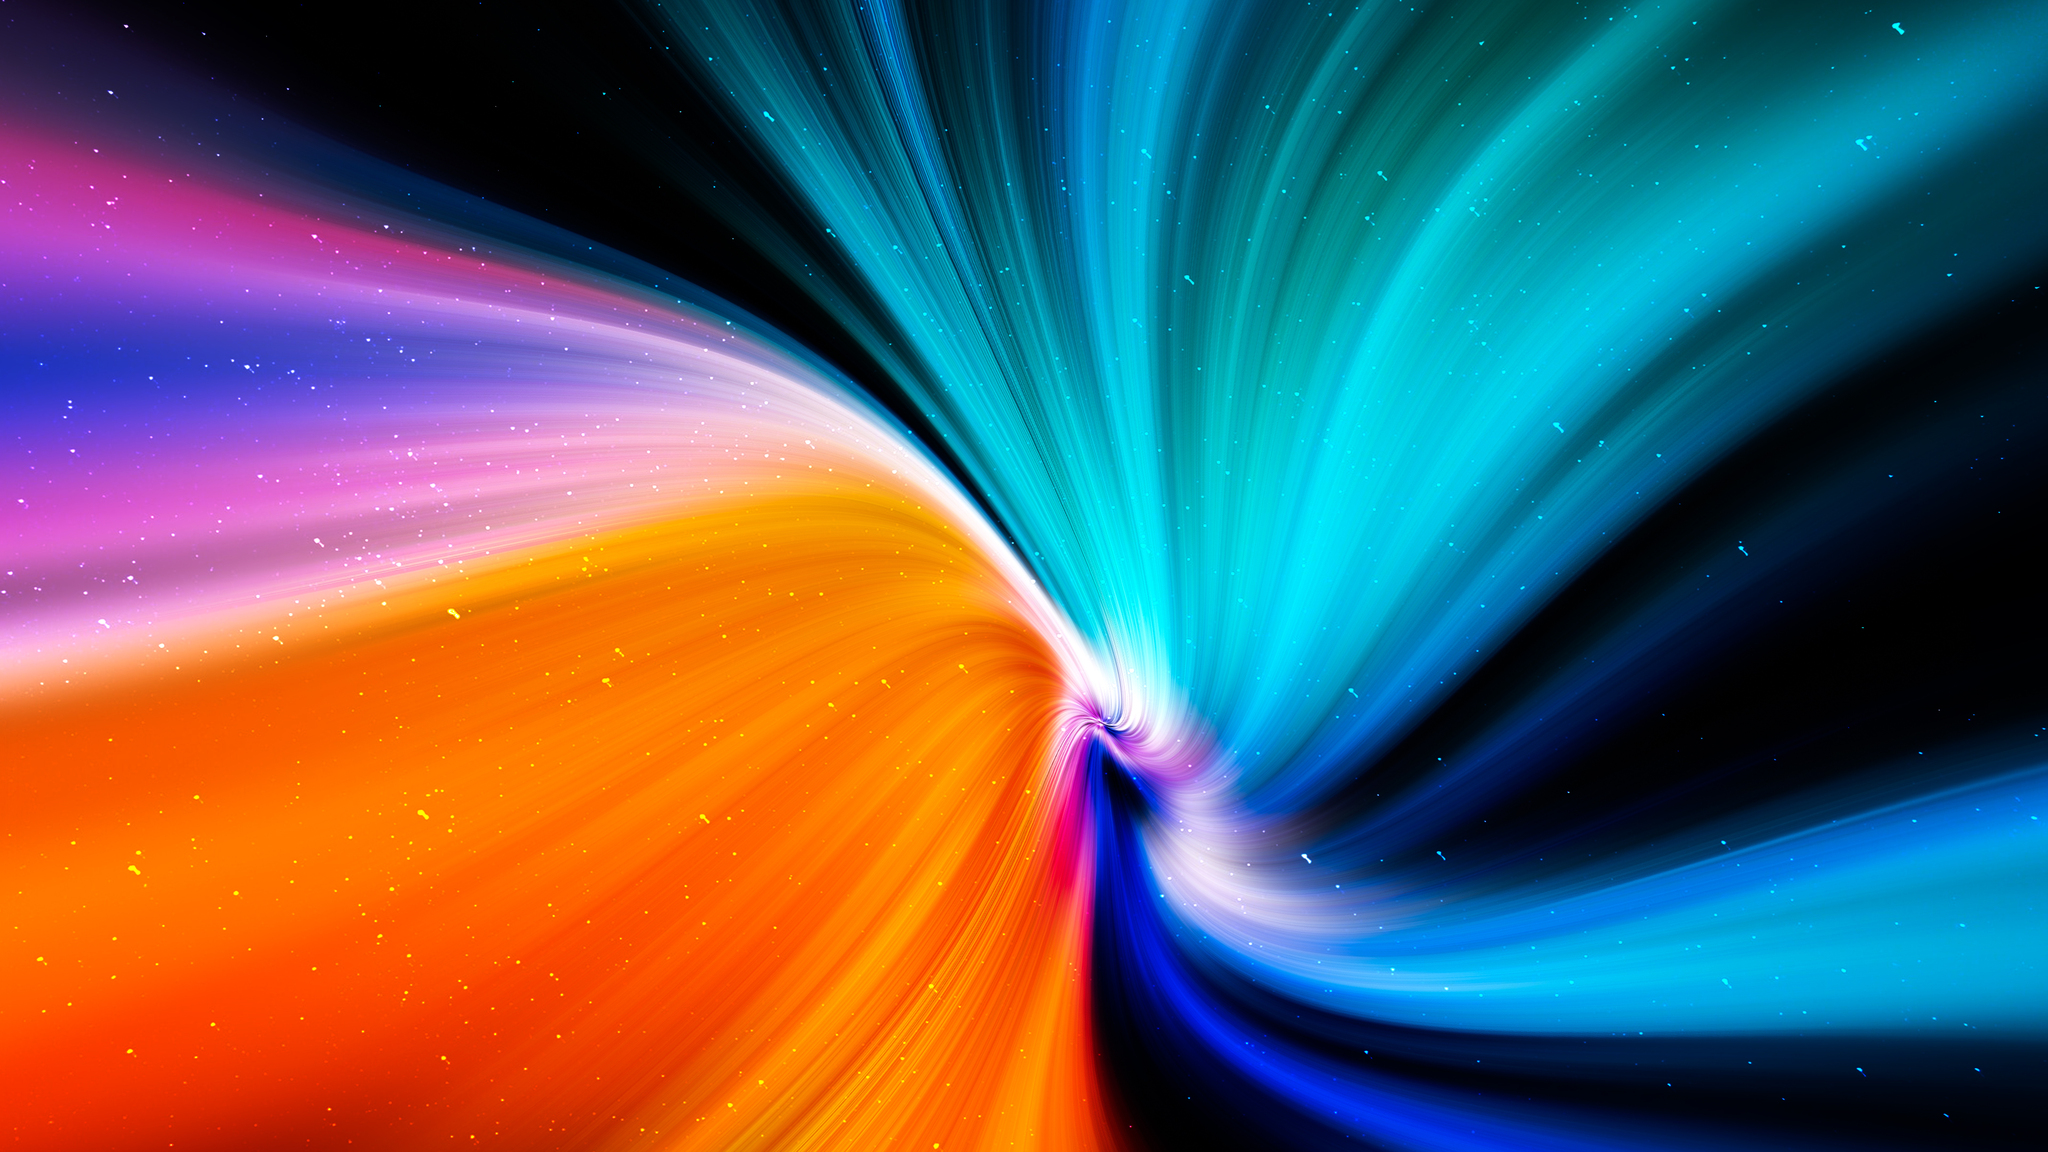 20x20 Source Abstract 20k 20x20 Resolution HD 20k Wallpapers ...